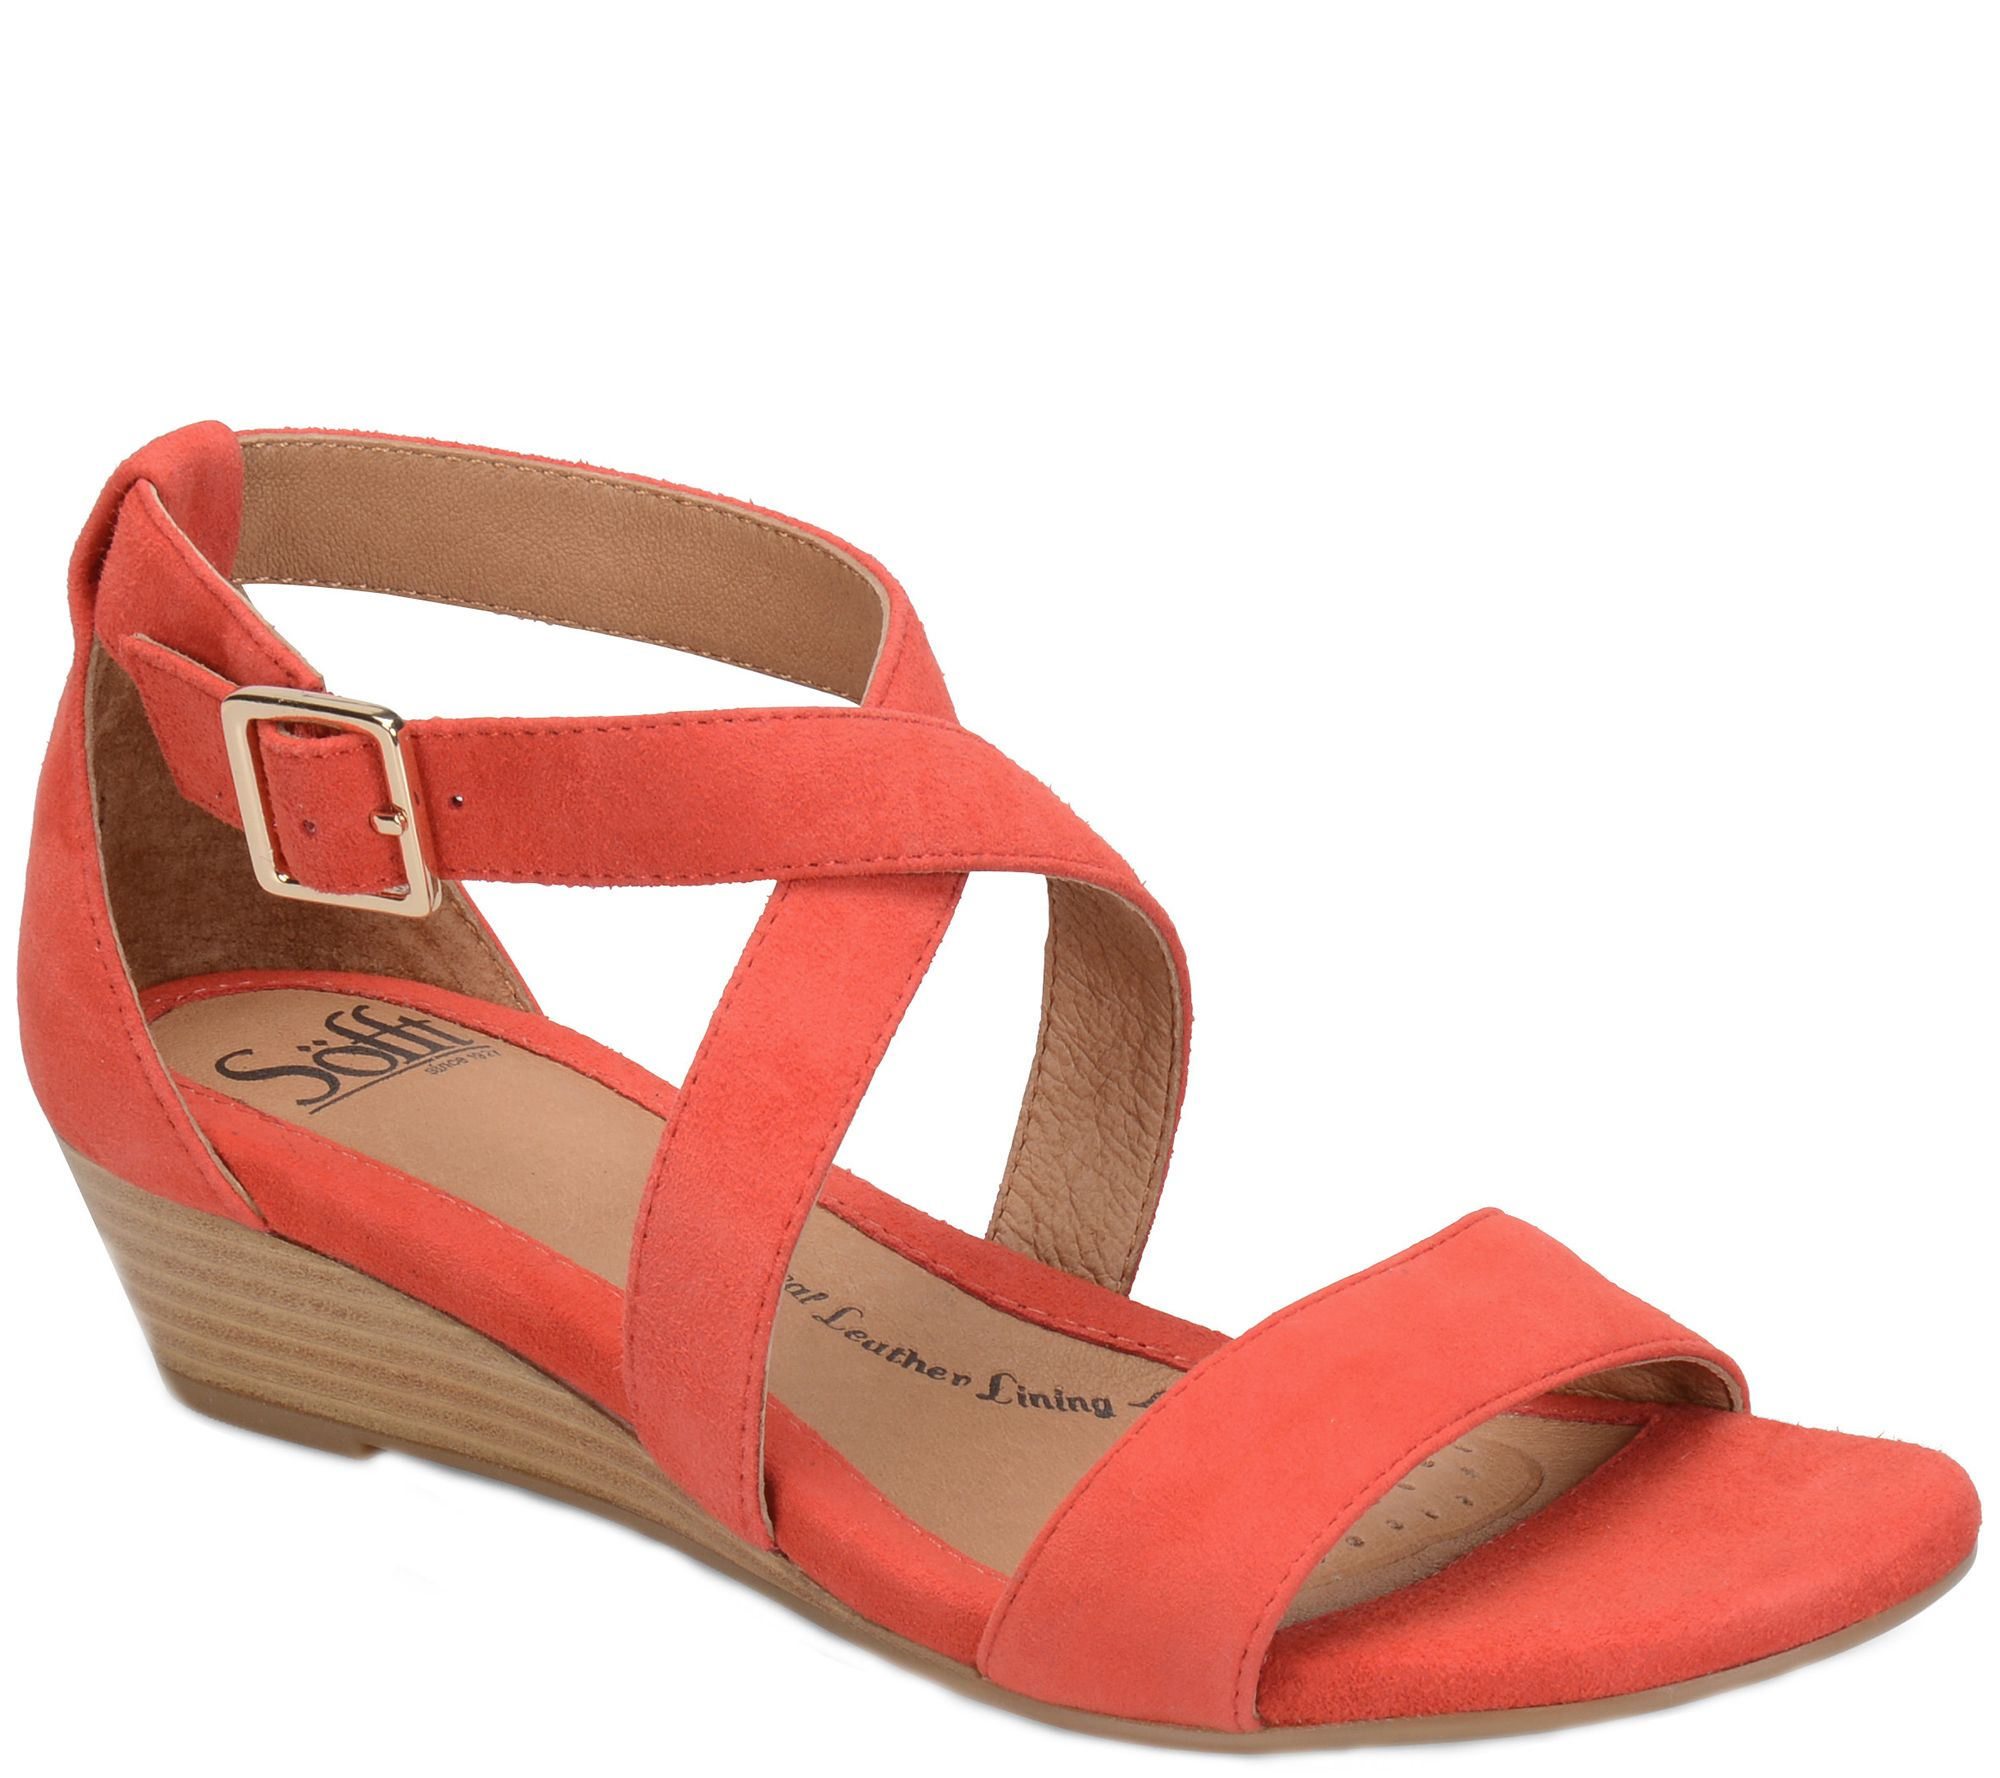 Sofft Leather Wedge Sandals Innis Page 1 Qvc Com